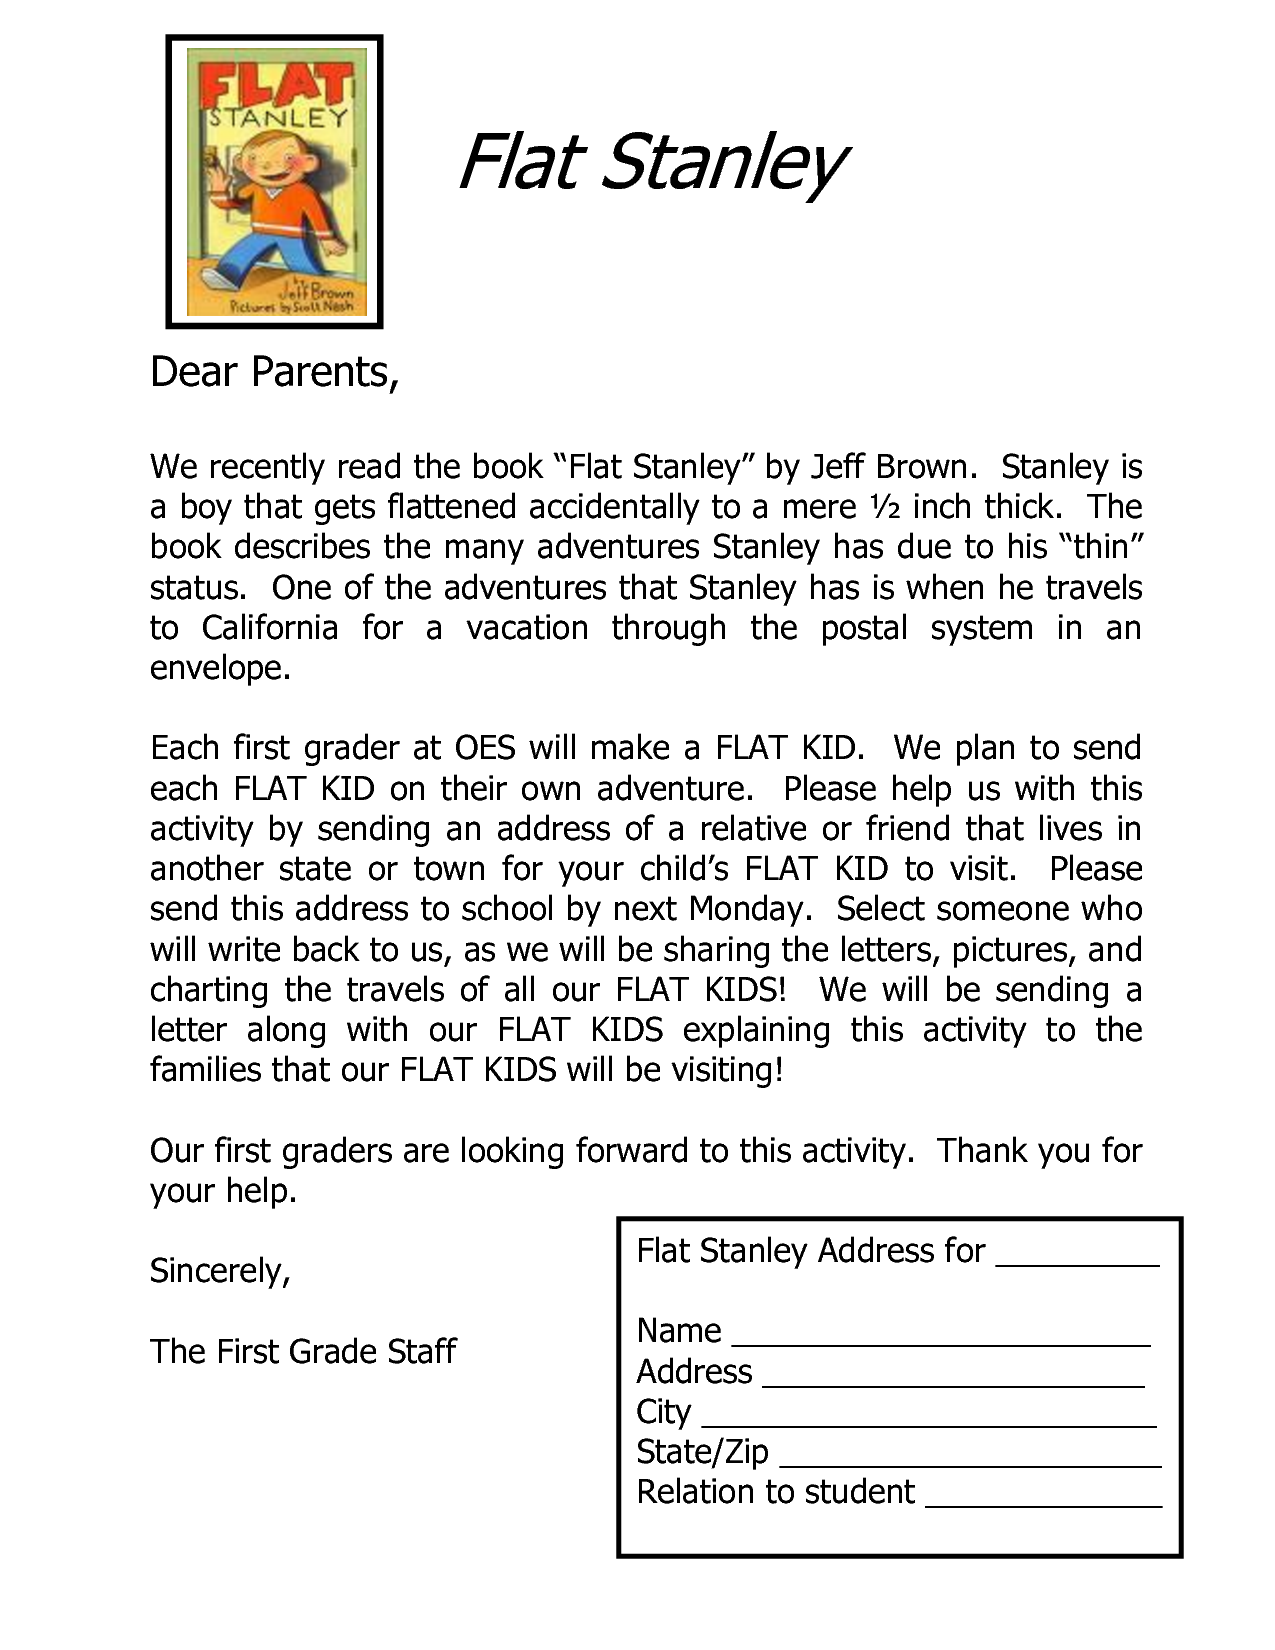 Flat stanley letter template 1st grade pinterest flat stanley flat stanley letter template altavistaventures Image collections